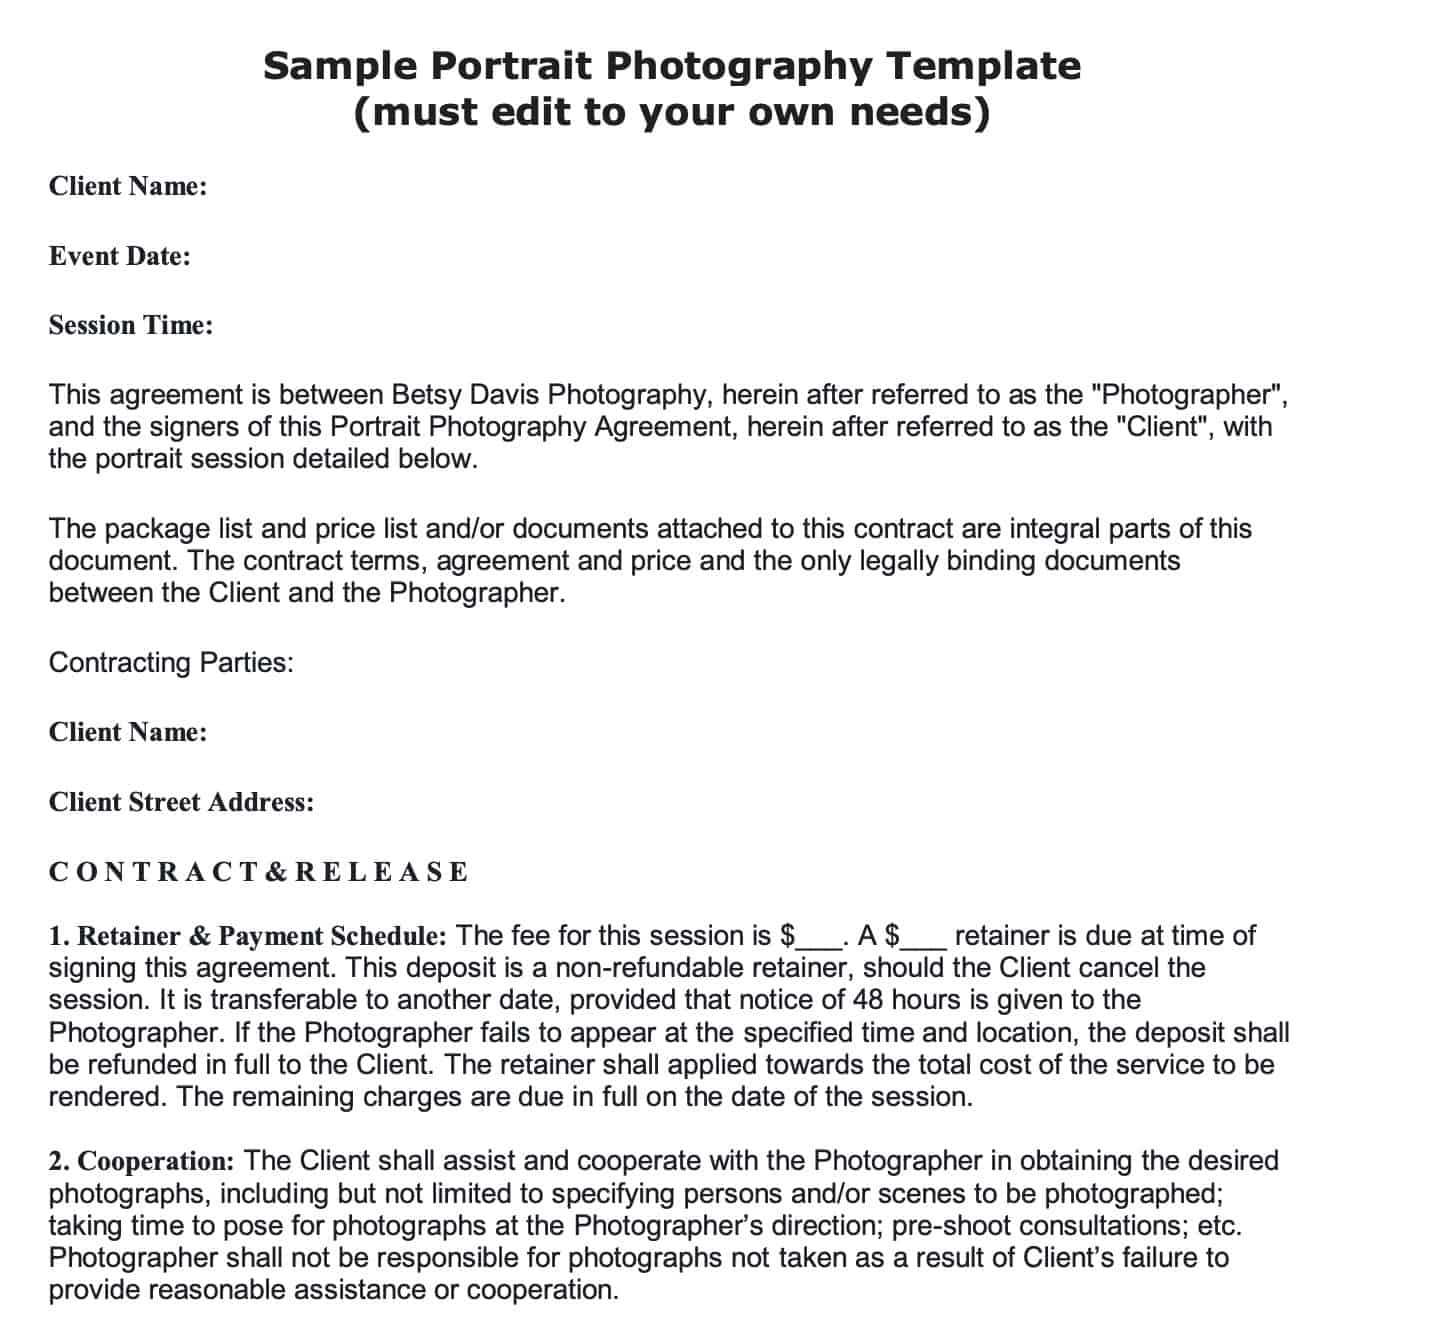 008 Stunning Portrait Photography Contract Template Highest Quality  Pdf AustraliaFull